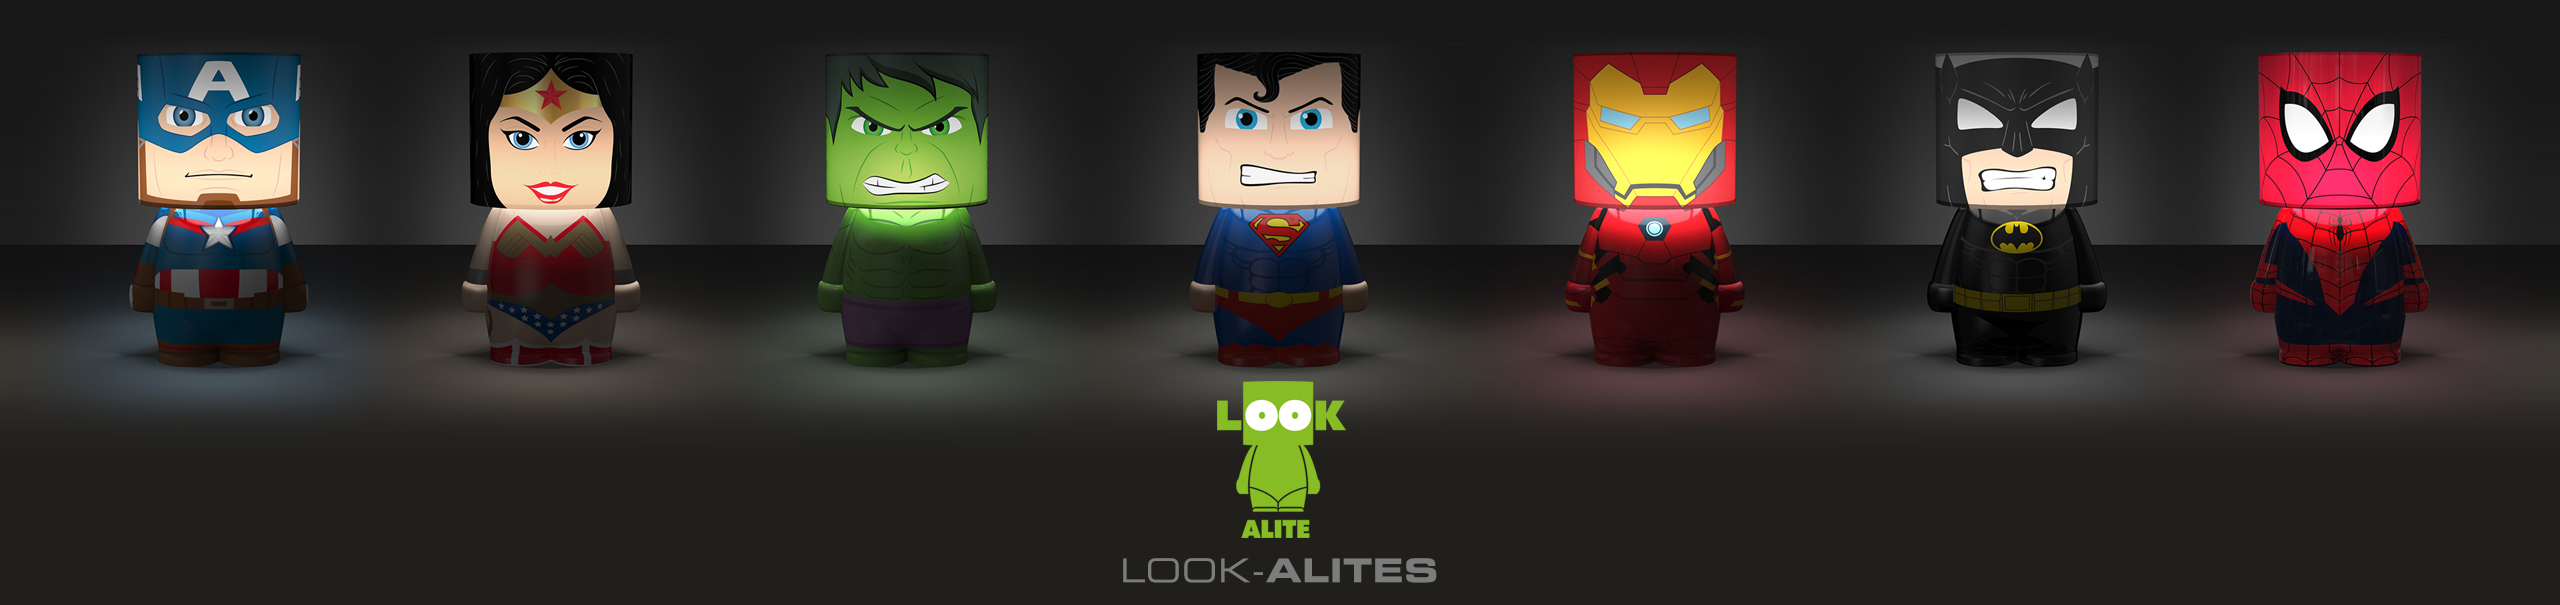 Look Alite Lamps Banner